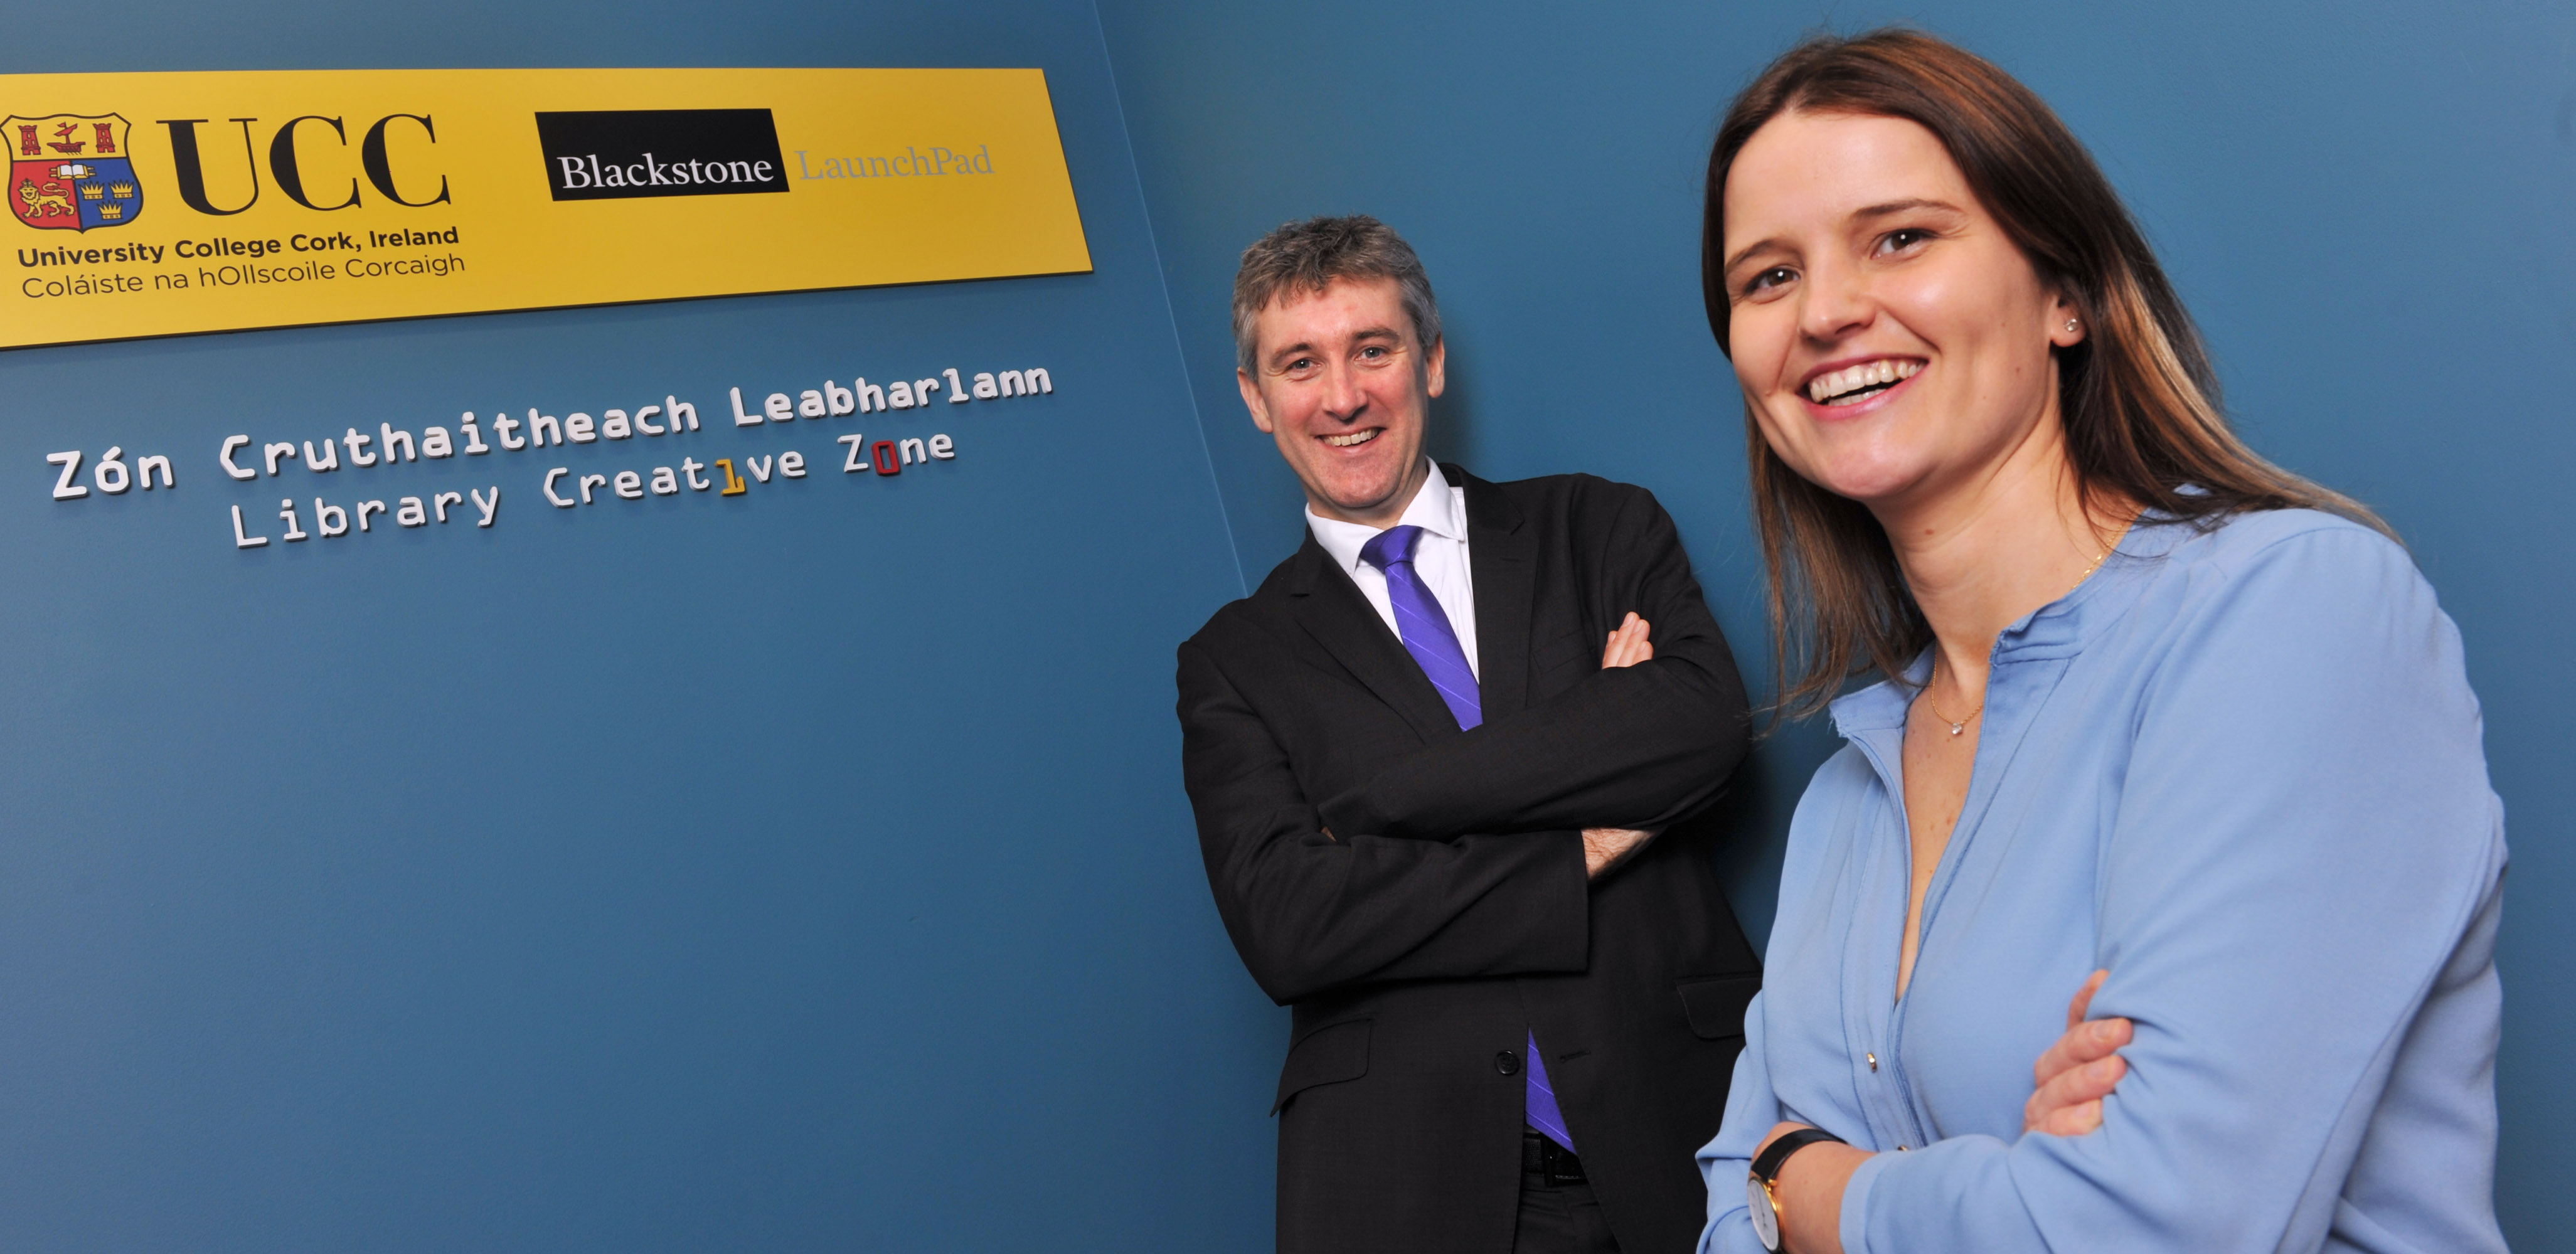 Blackstone LaunchPad to boost Cork's entrepreneur ecosystem